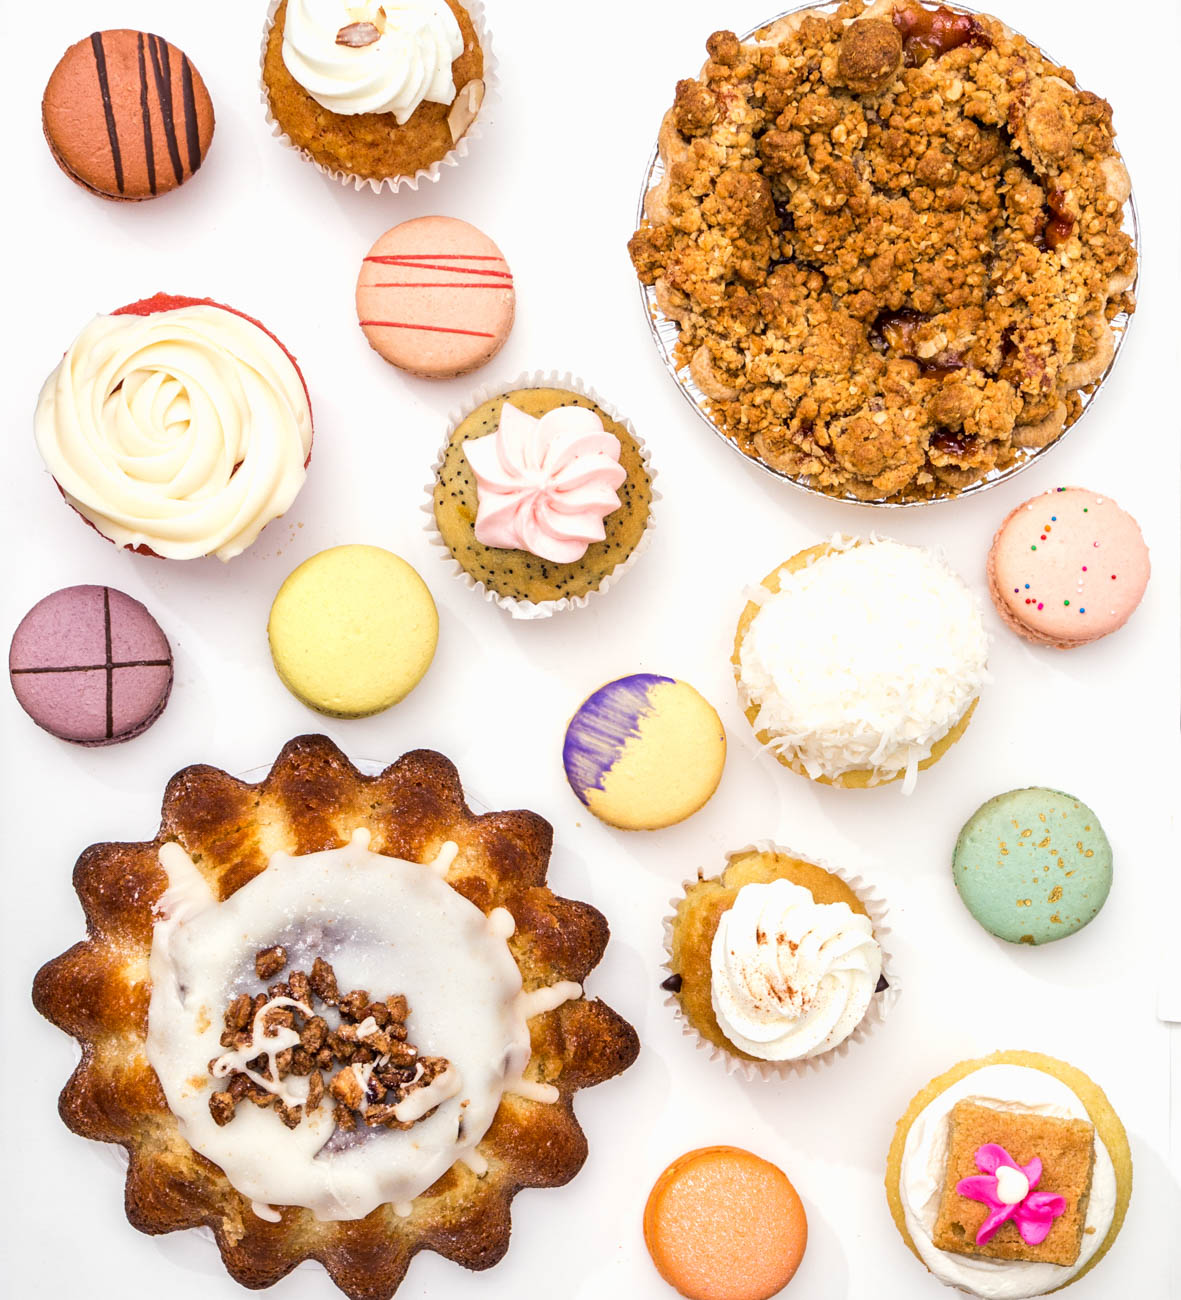 From cakes to macarons and every baked good in between, the nine bakeries in this roundup have all honed their delicious crafts and know the way into our hearts (and bellies). / Image: Catherine Viox // Published: 1.4.20